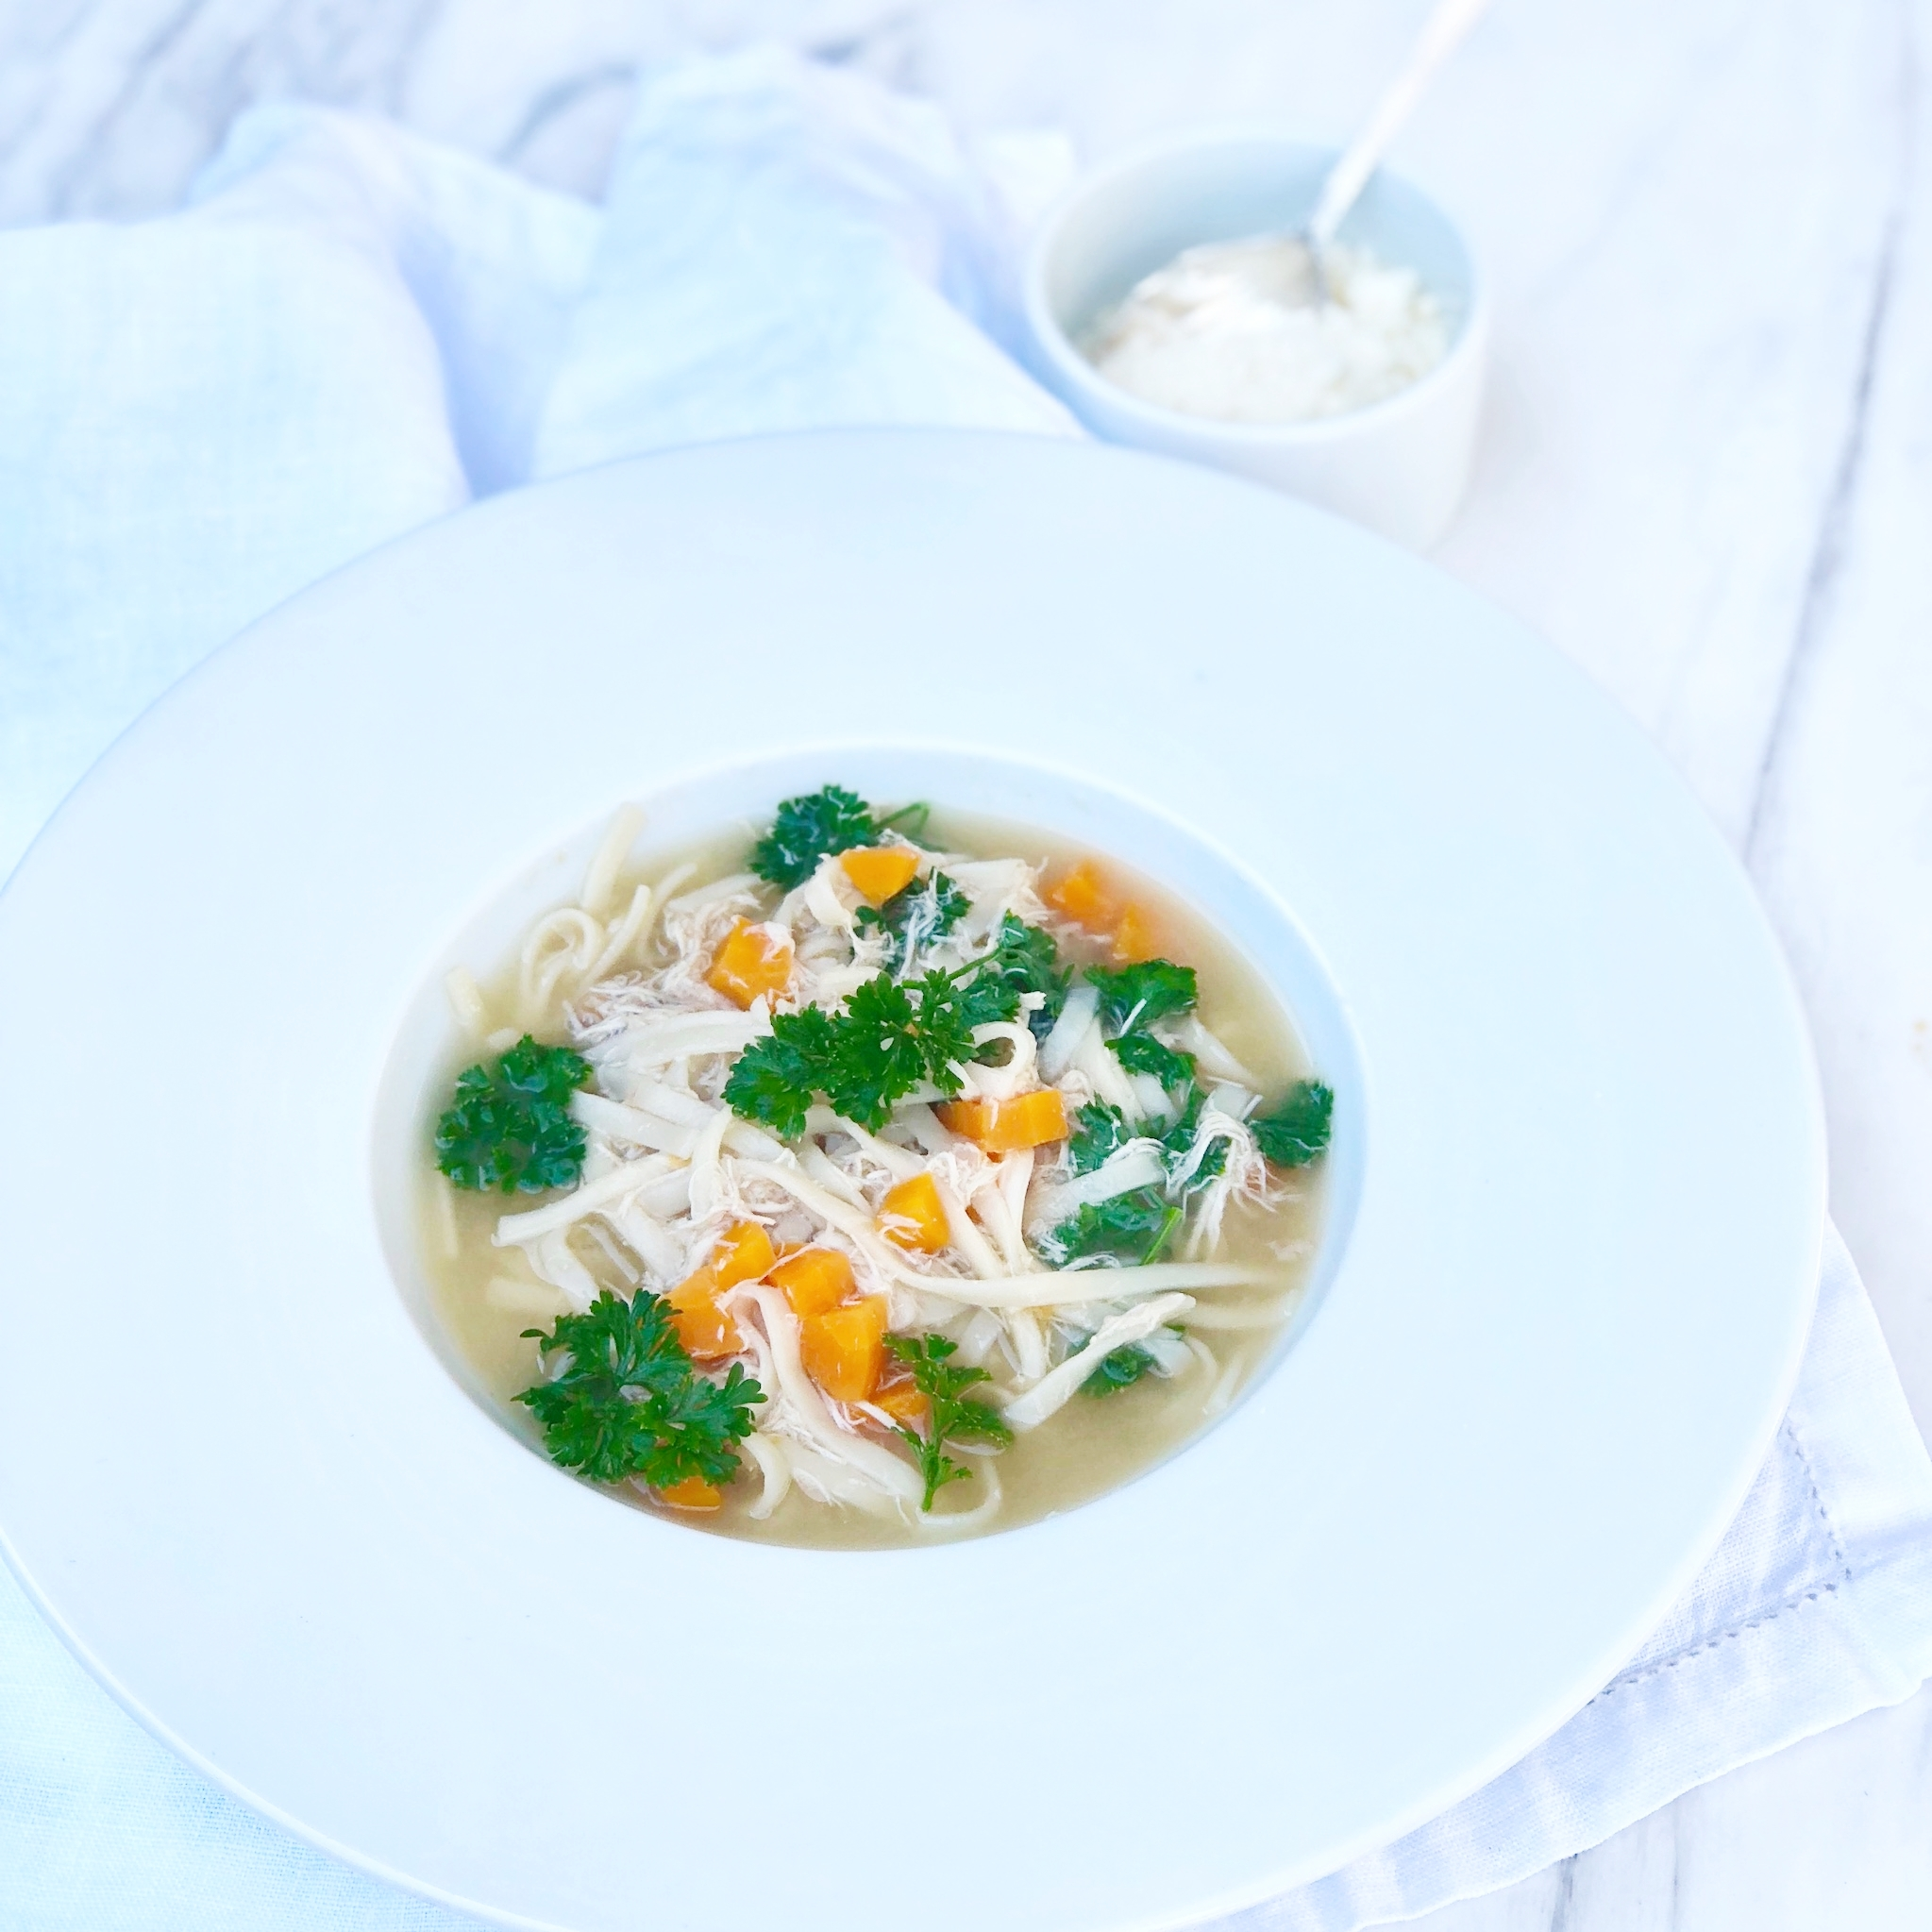 Chicken noodle soup with my 'base' chicken broth soup